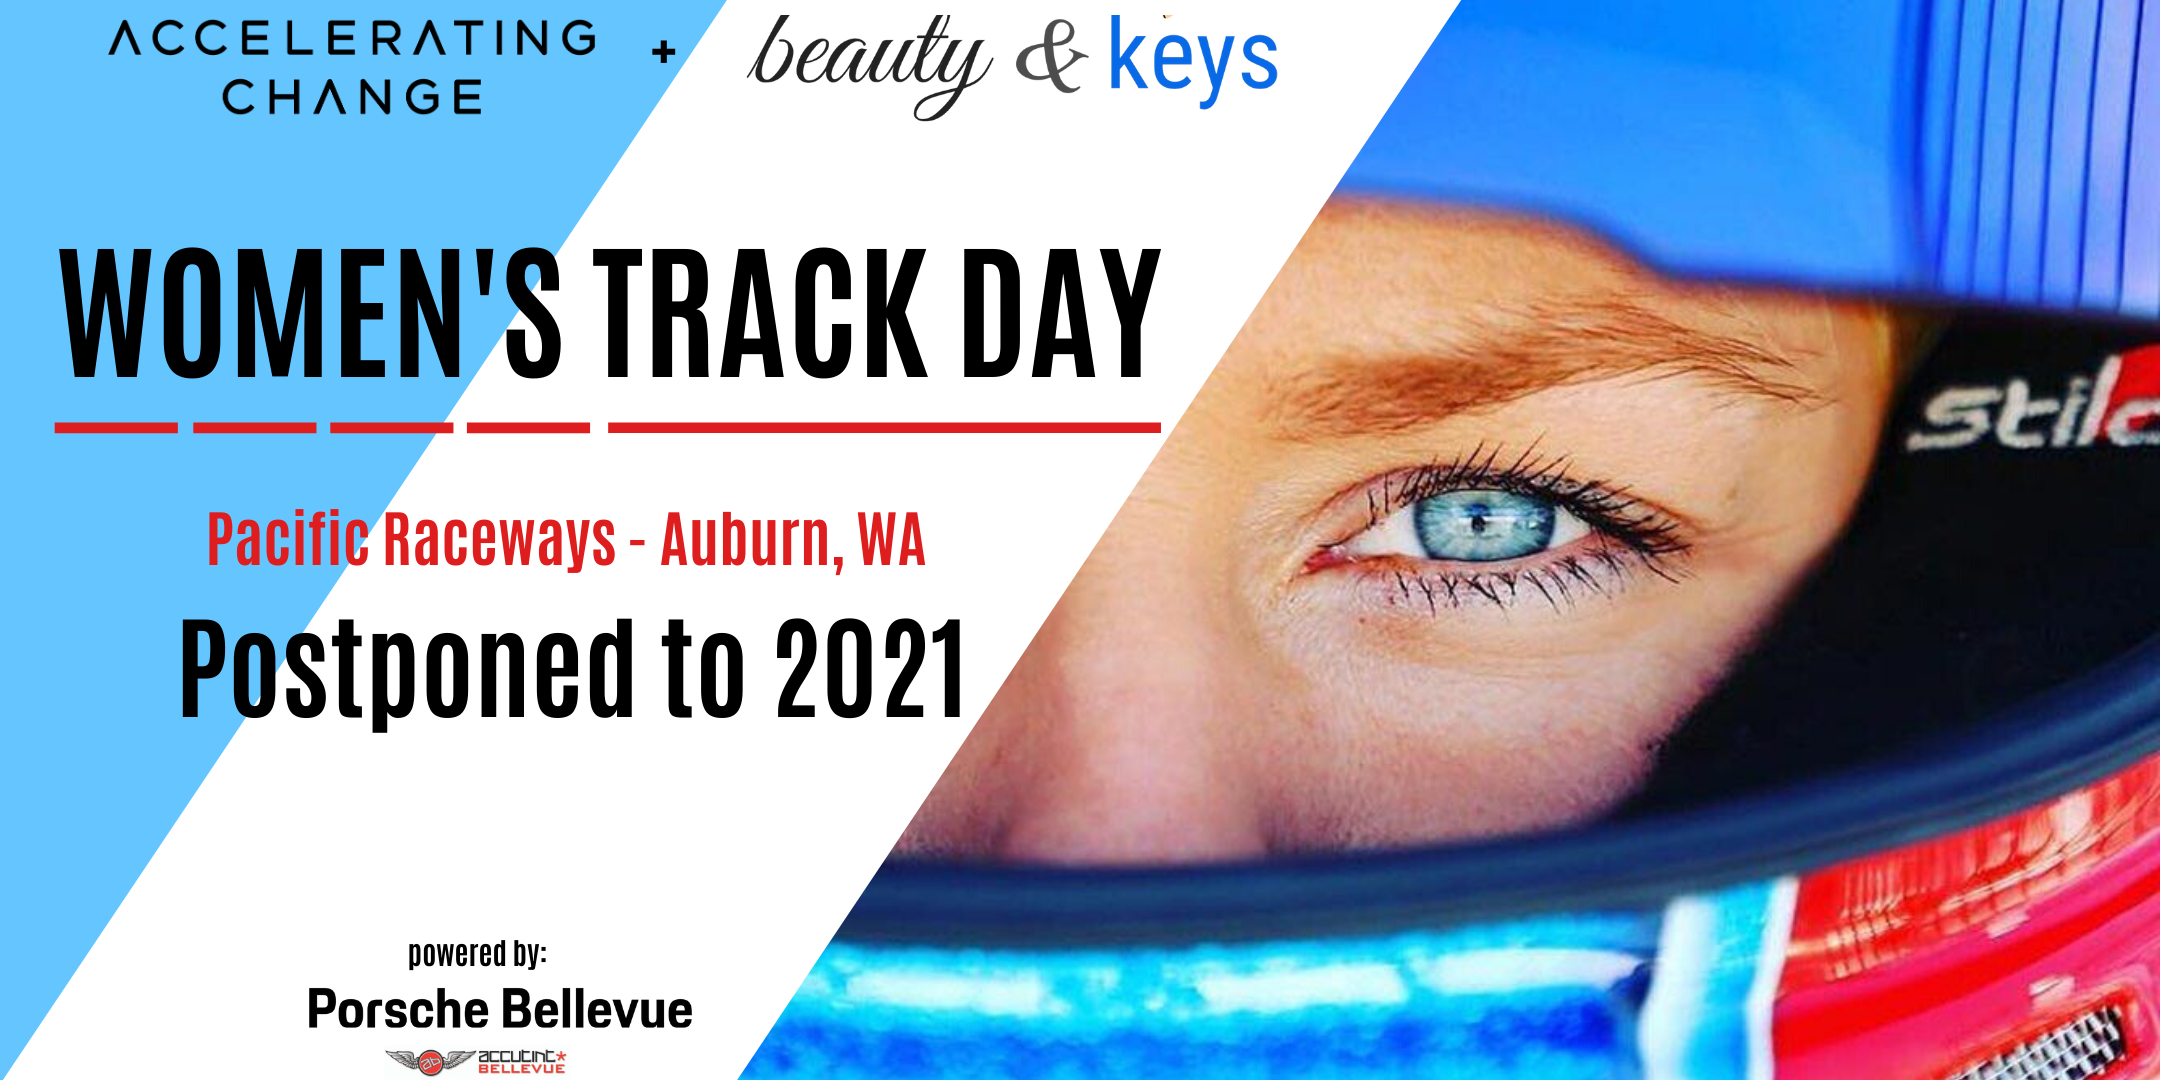 Women's Track Day at Pacific Raceways banner image featuring Christina Nielsen